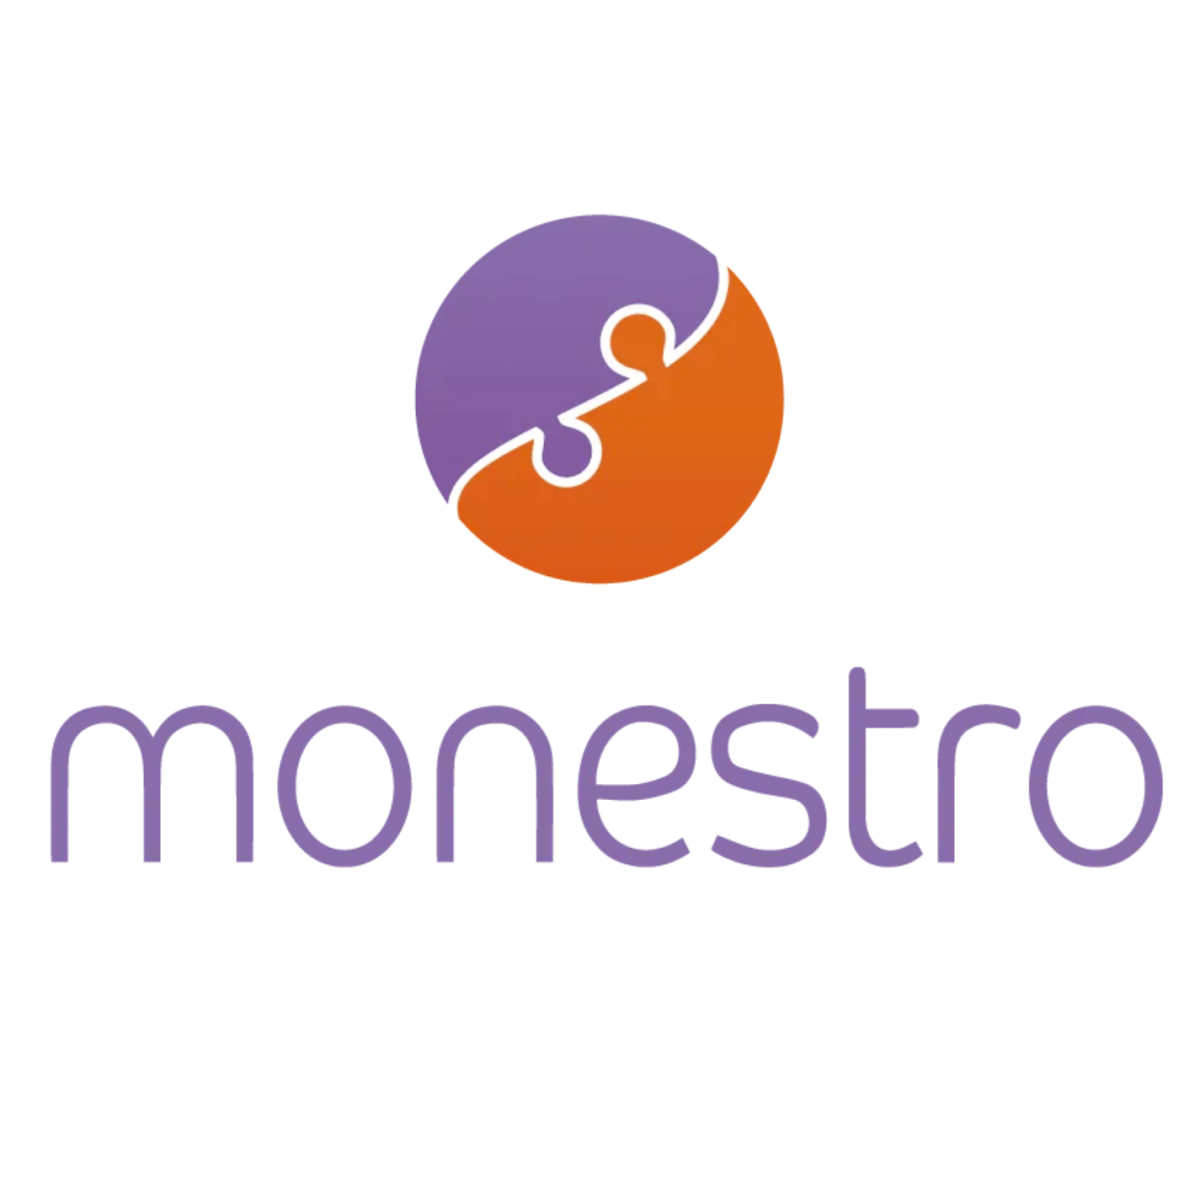 Monestro Logo @ Savings4Freedom